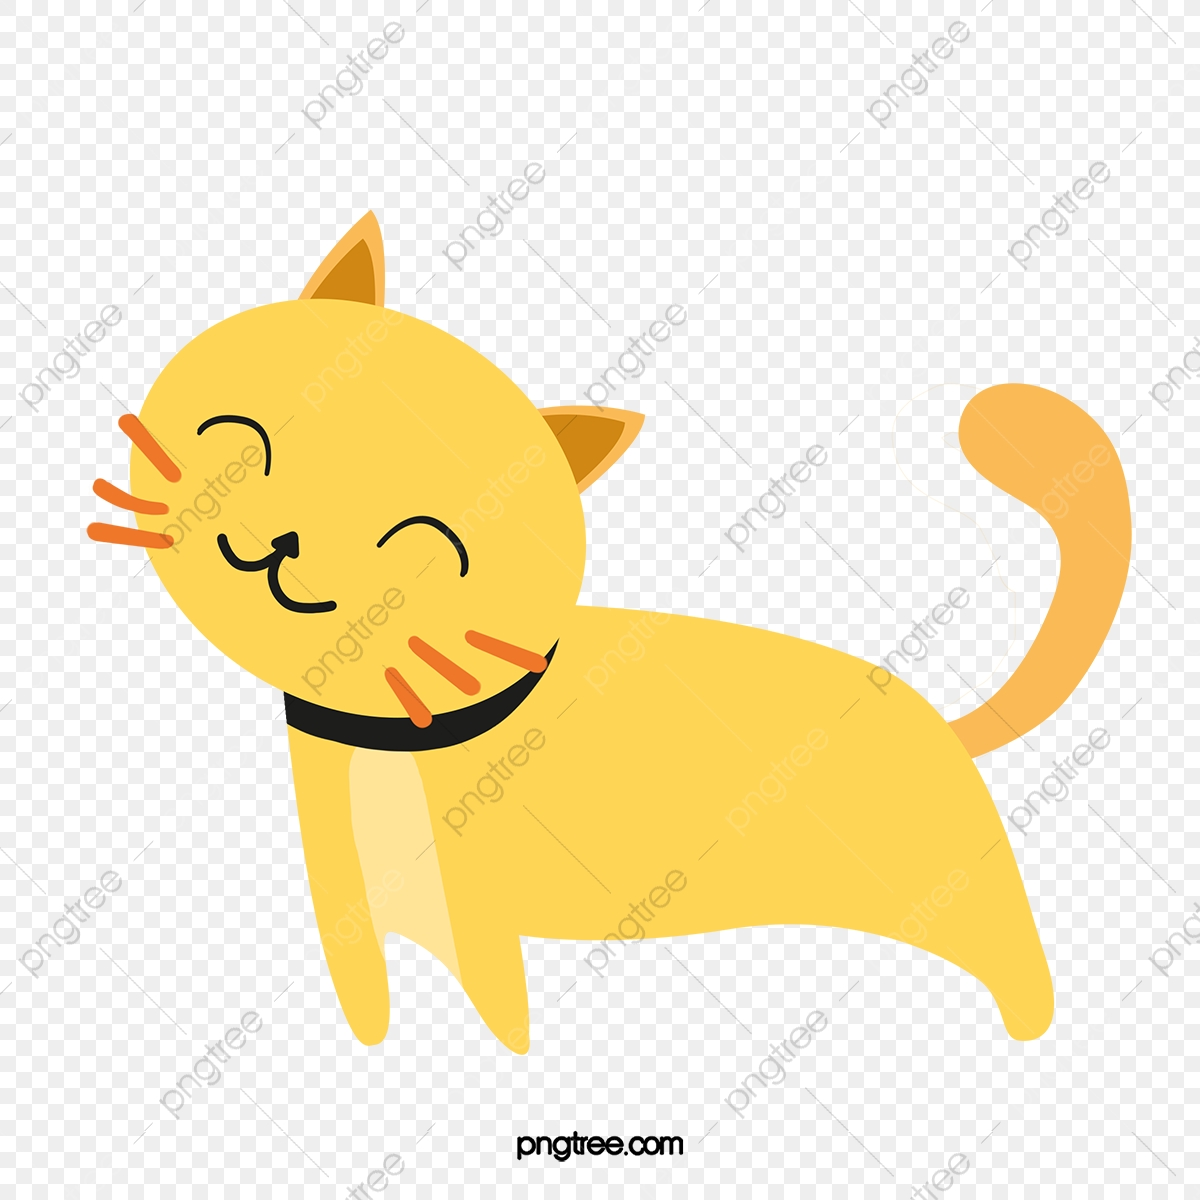 Lazy Cat Cat Clipart Yellow Cartoon Png Transparent Clipart Image And Psd File For Free Download